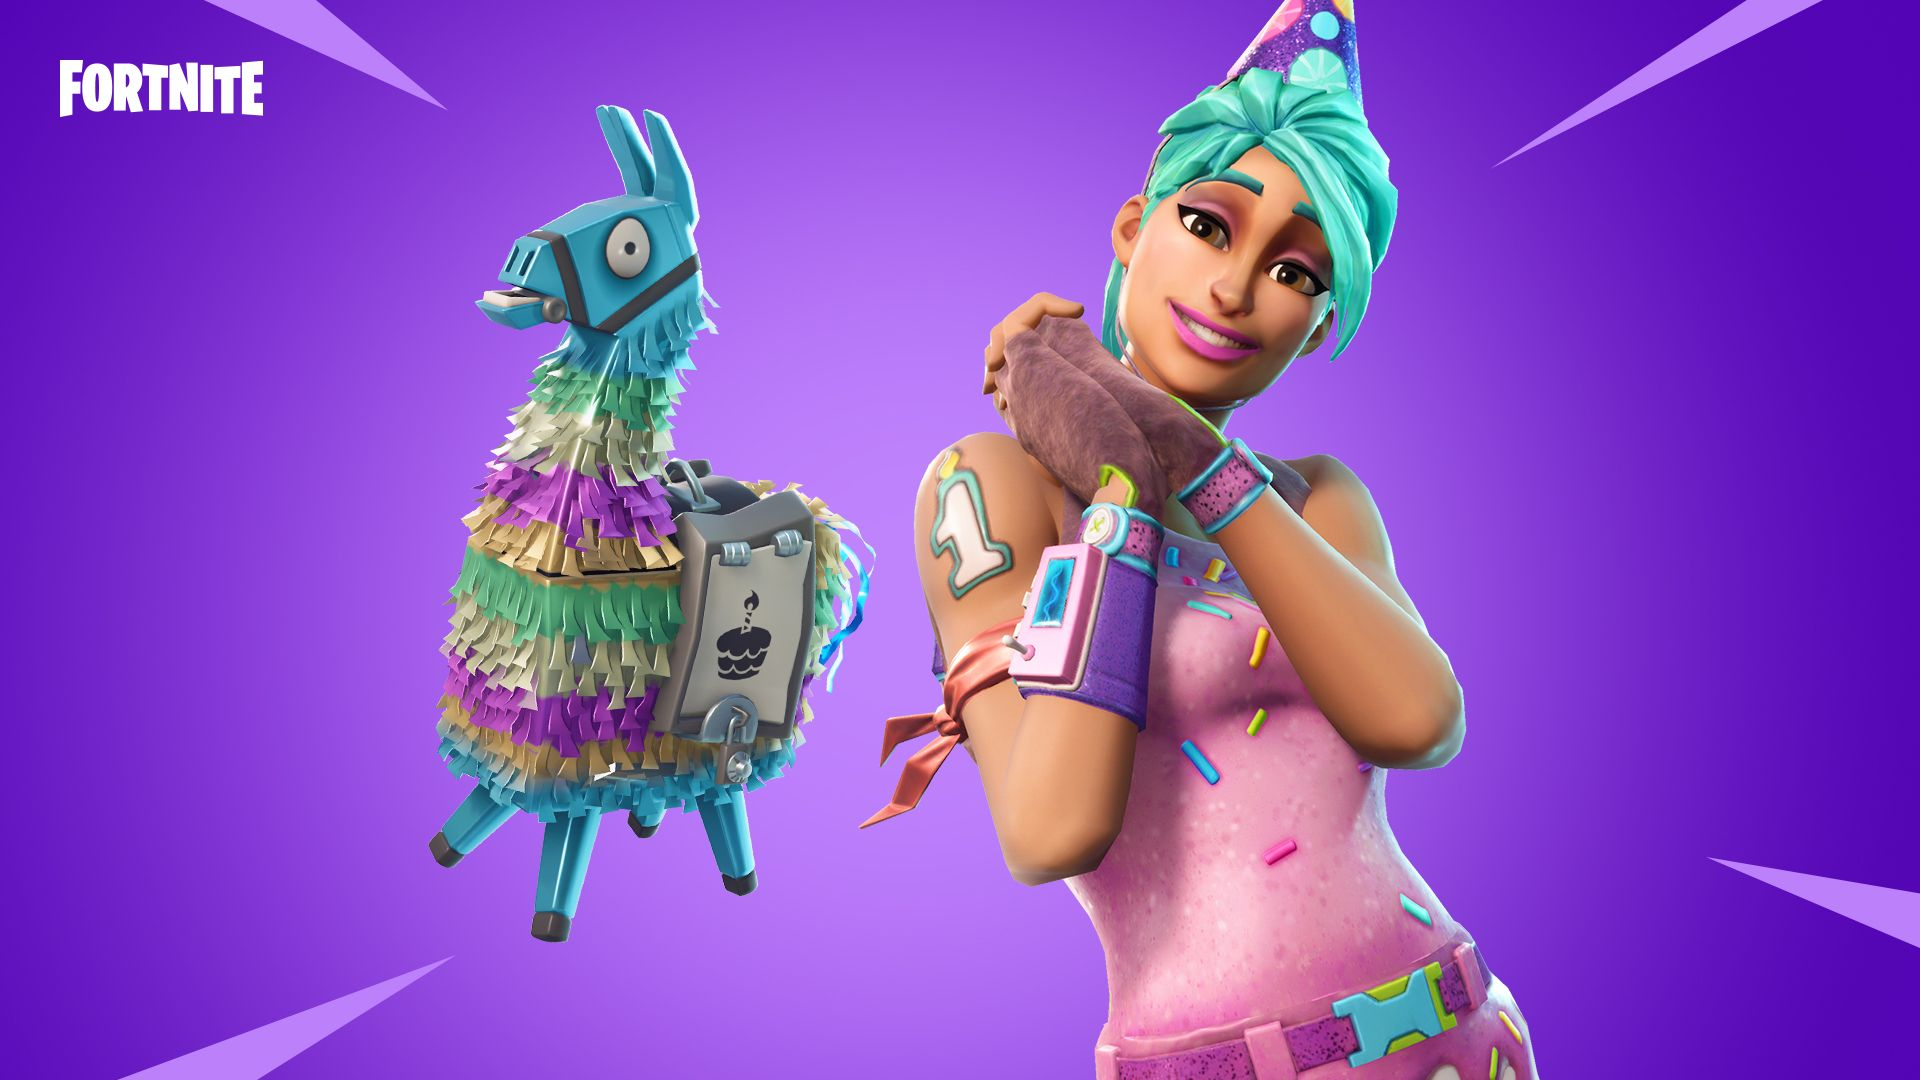 Fortnite' Update 5 1 (1 68) Adds Compact SMG & Birthday Event